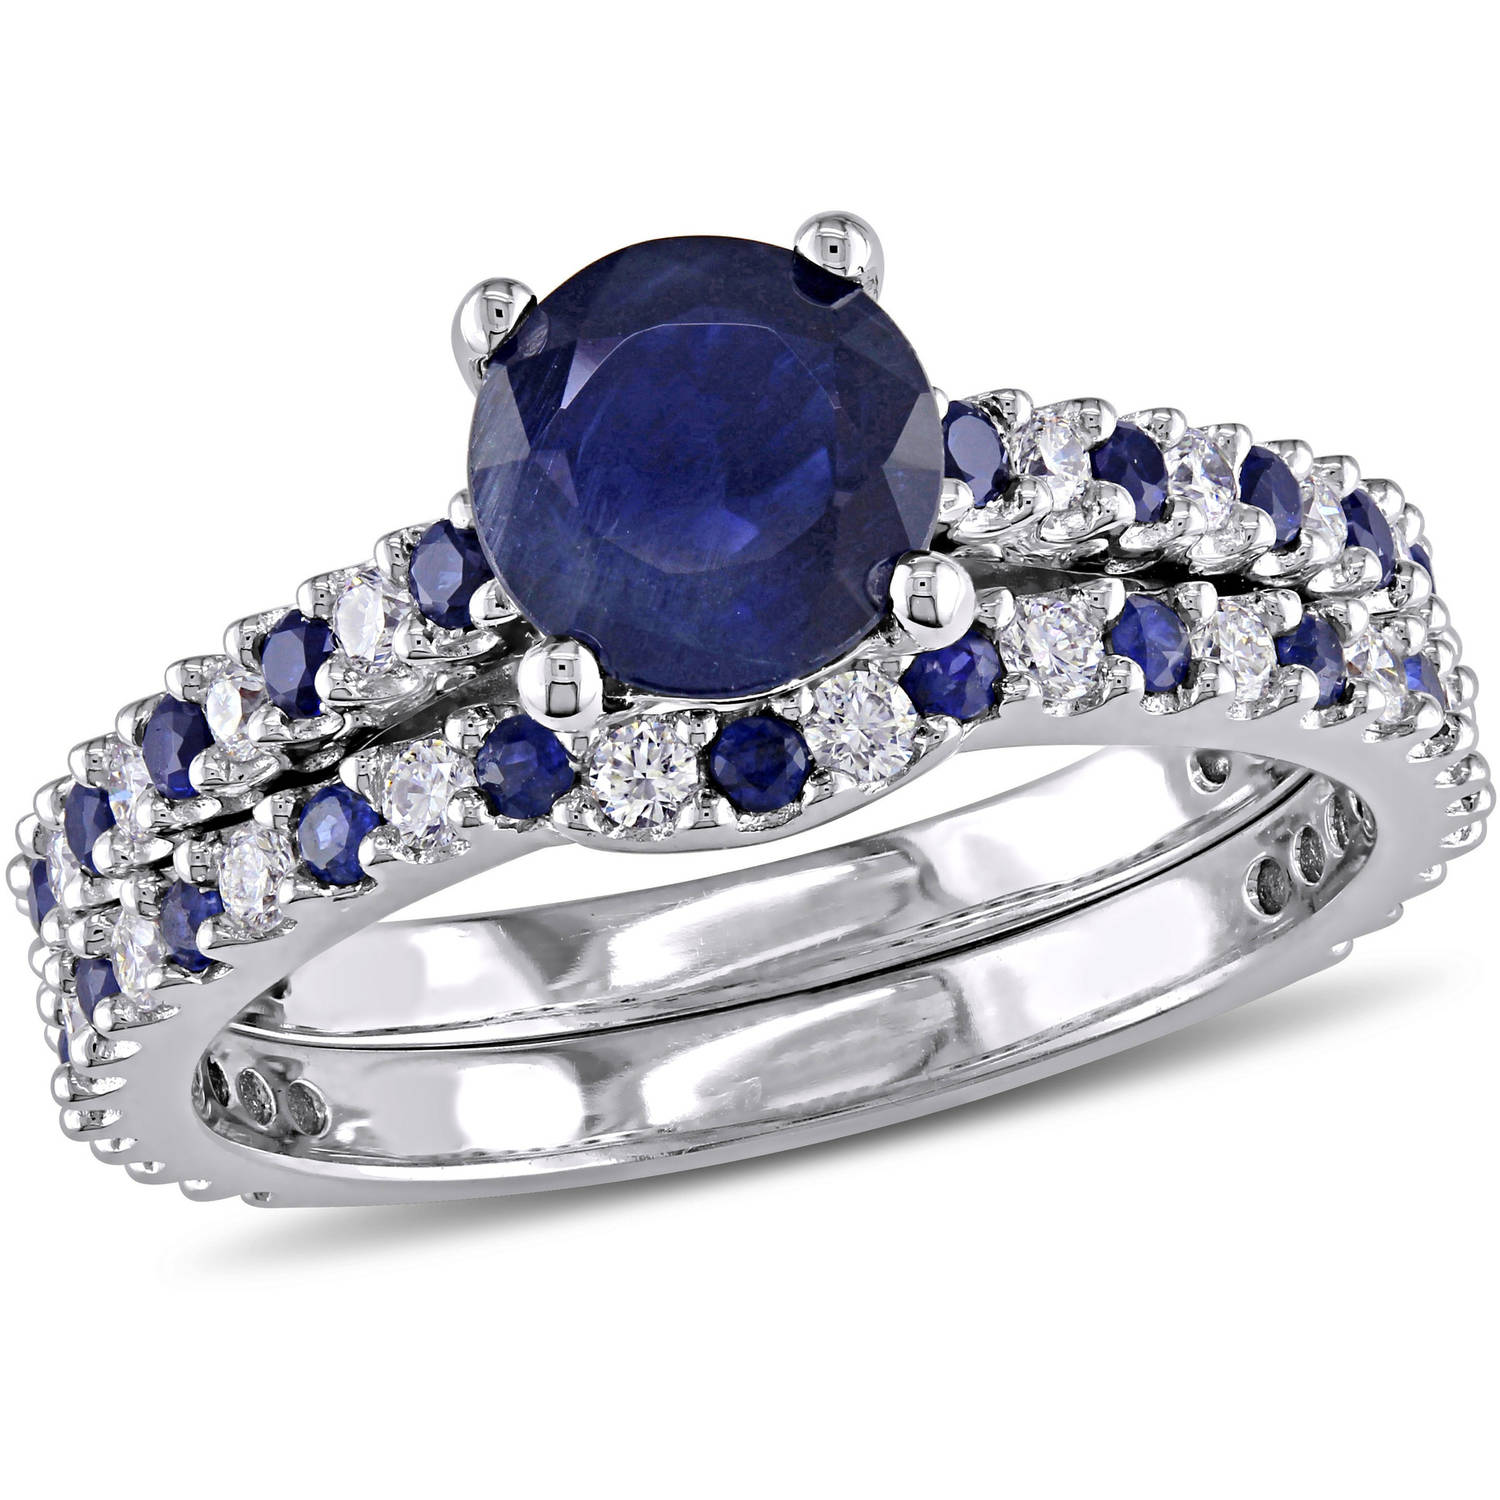 Tangelo 1-4 5 Carat T.G.W. Sapphire and 3 8 Carat T.W. Diamond 14kt White Gold Bridal Set by Tangelo